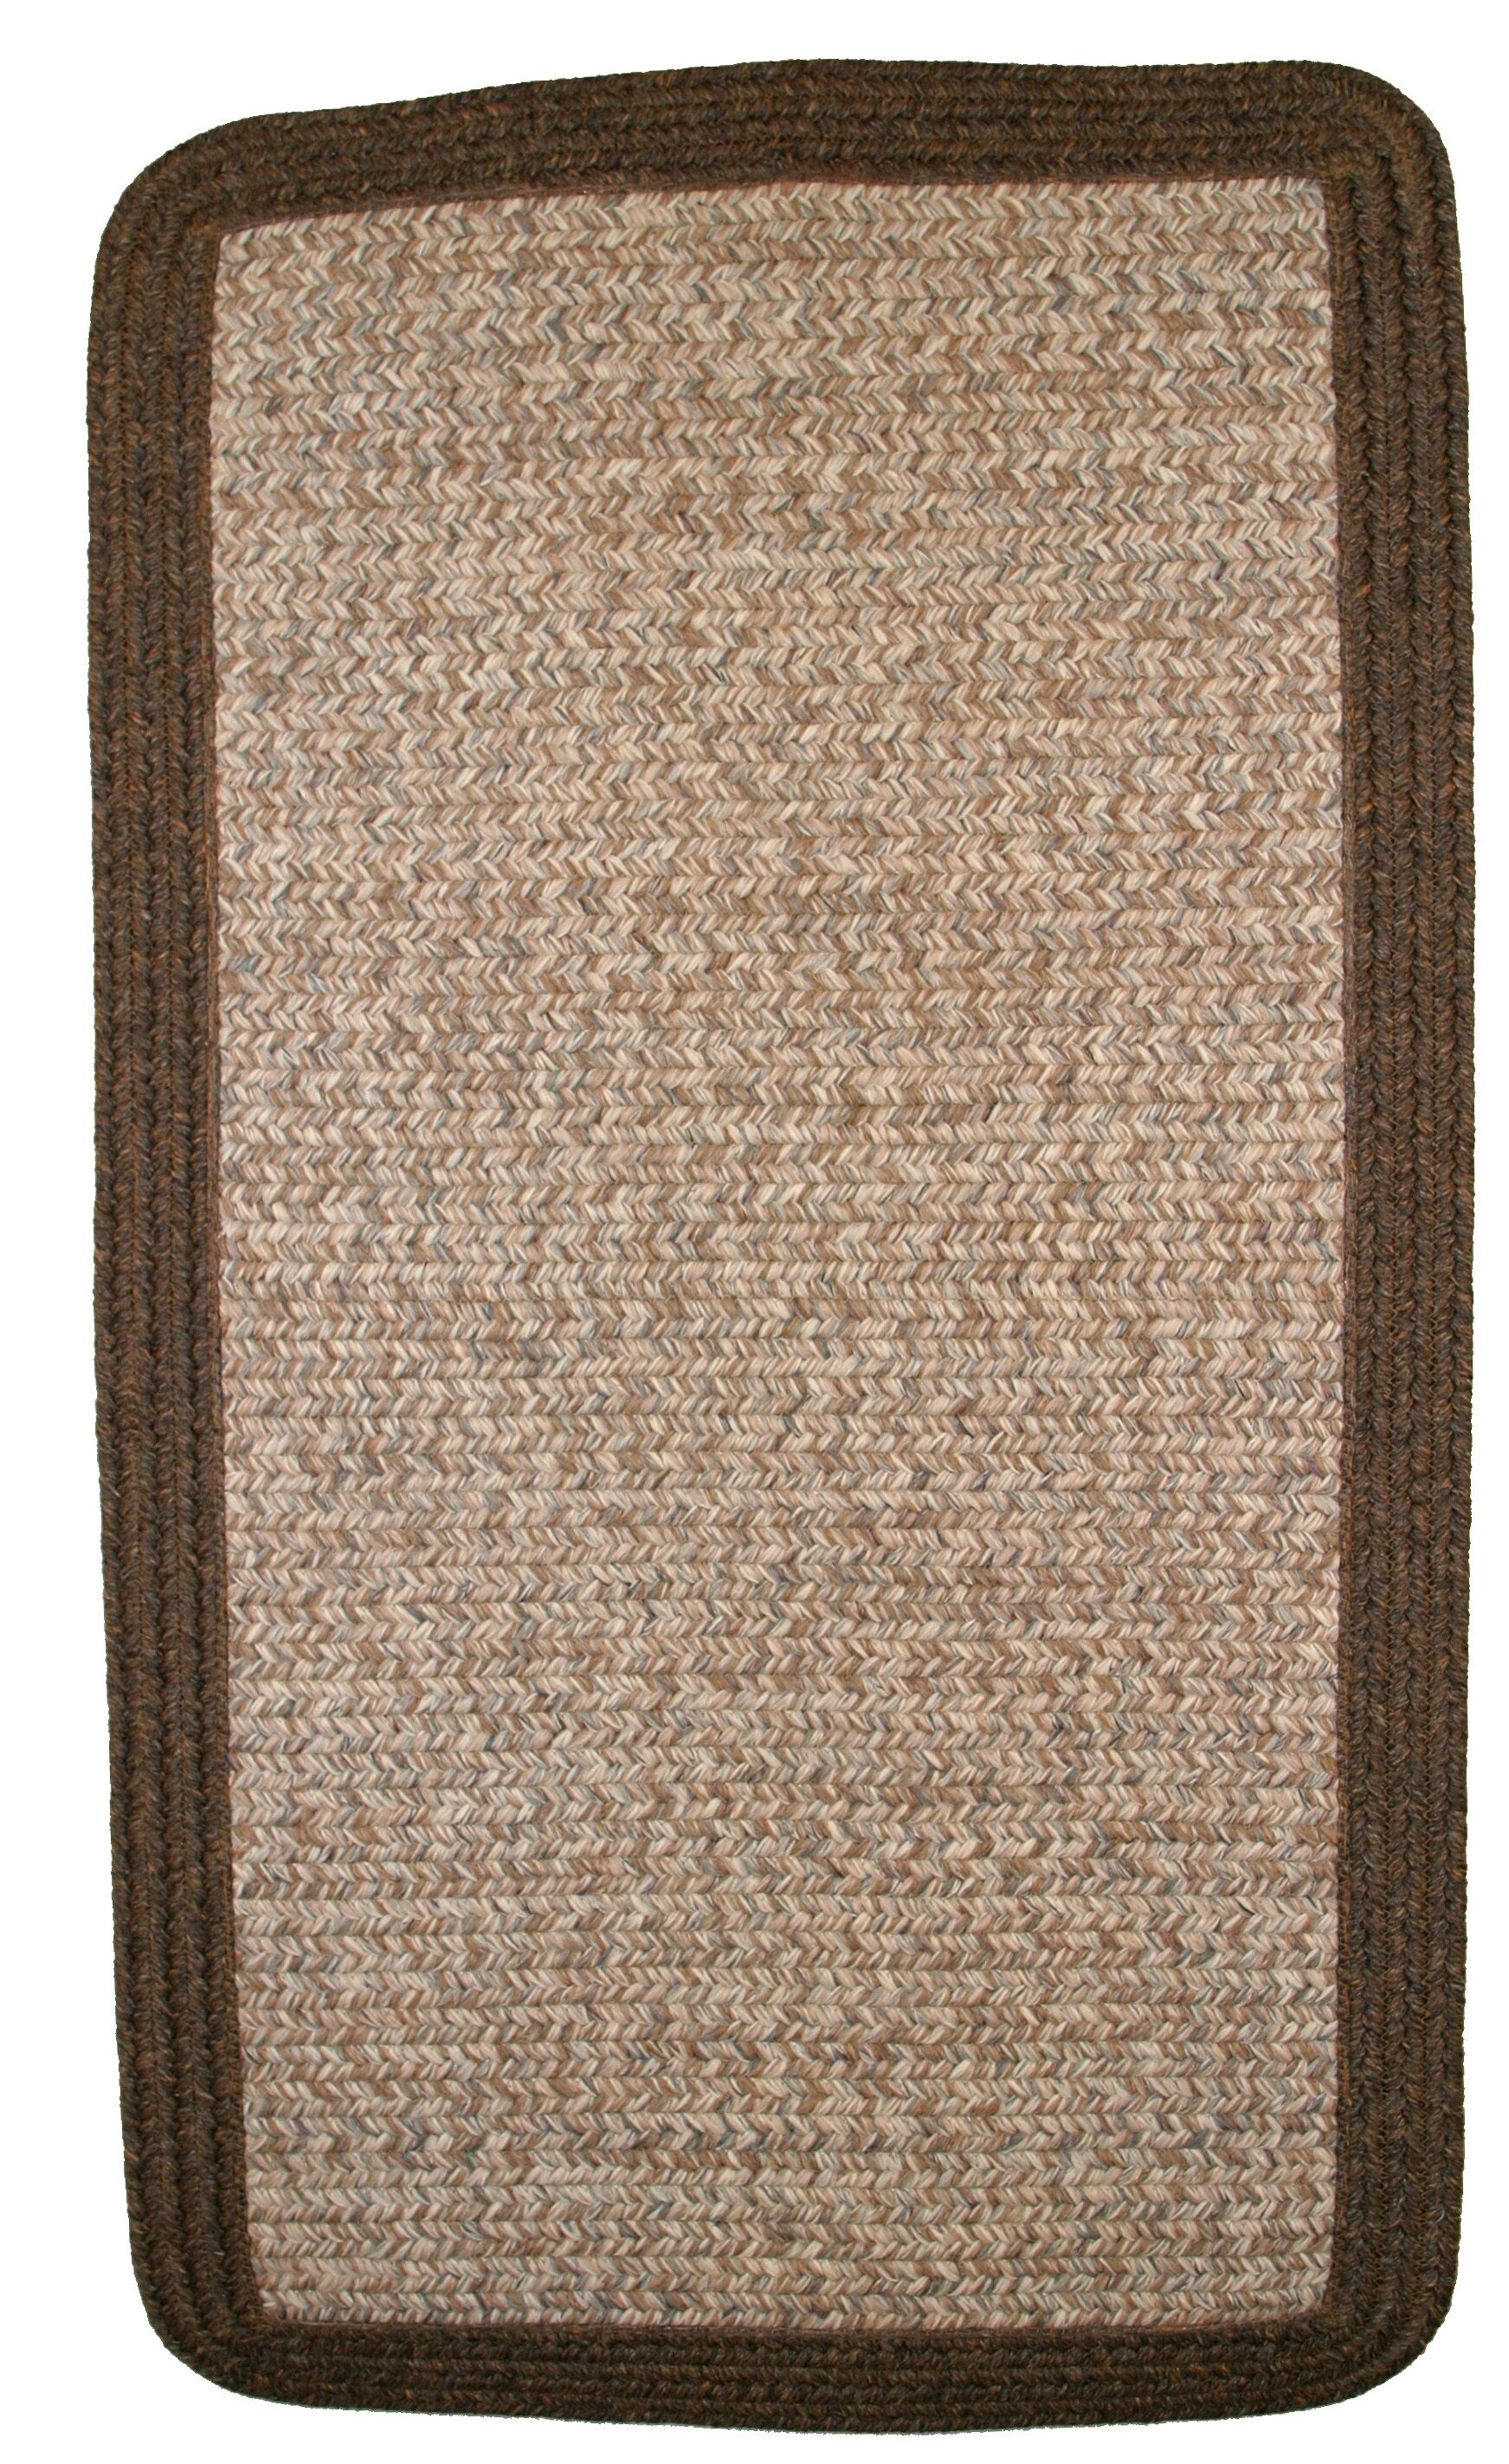 Town Crier Brown Heather with Brown Solids Indoor/Outdoor Rug Rug Size: Rectangle 9' x 12'